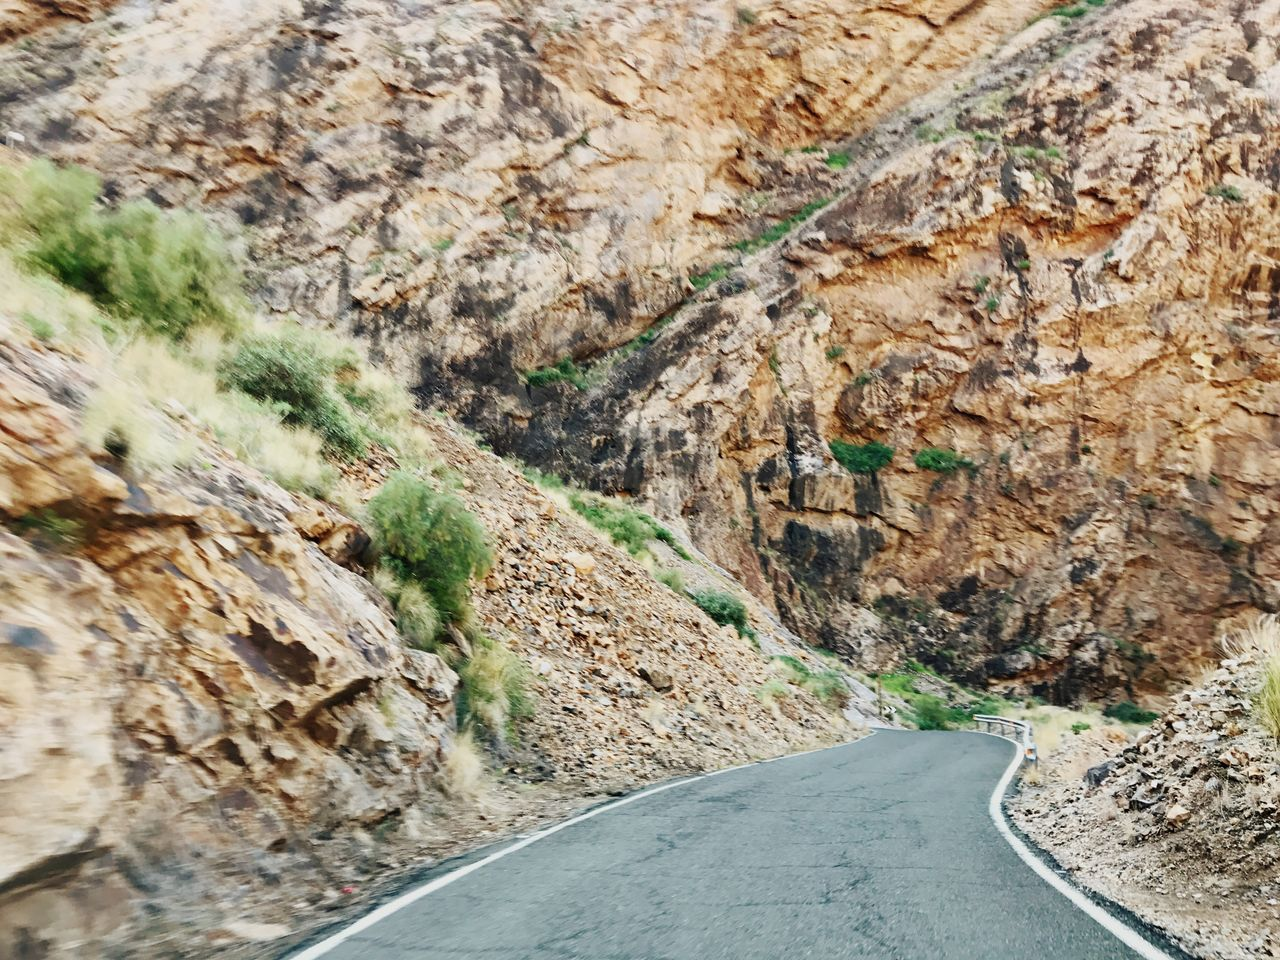 Road Gran Canaria Mountain Mountain Road Road Rock - Object The Way Forward Nature Transportation Scenics Curve Day No People Outdoors Winding Road Beauty In Nature